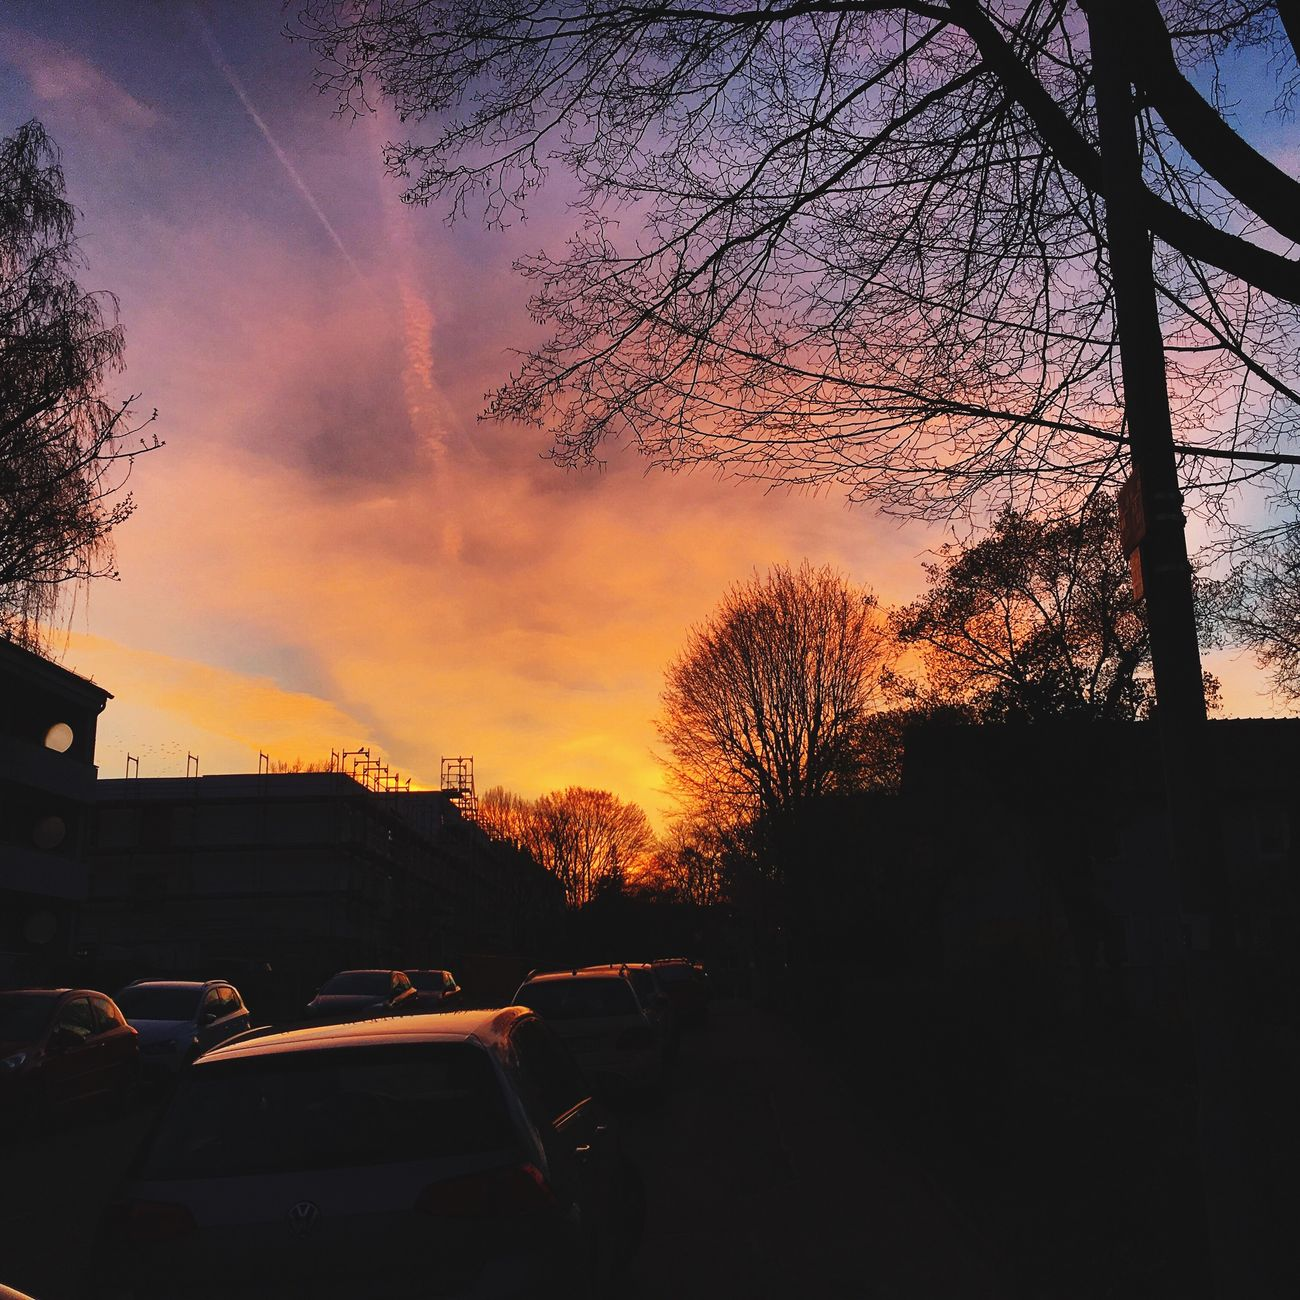 Sonnenuntergang bei uns im Viertel Sunset Car Tree Transportation Land Vehicle Sky Mode Of Transport No People Silhouette Building Exterior Car Roof Outdoors Architecture Nature Day